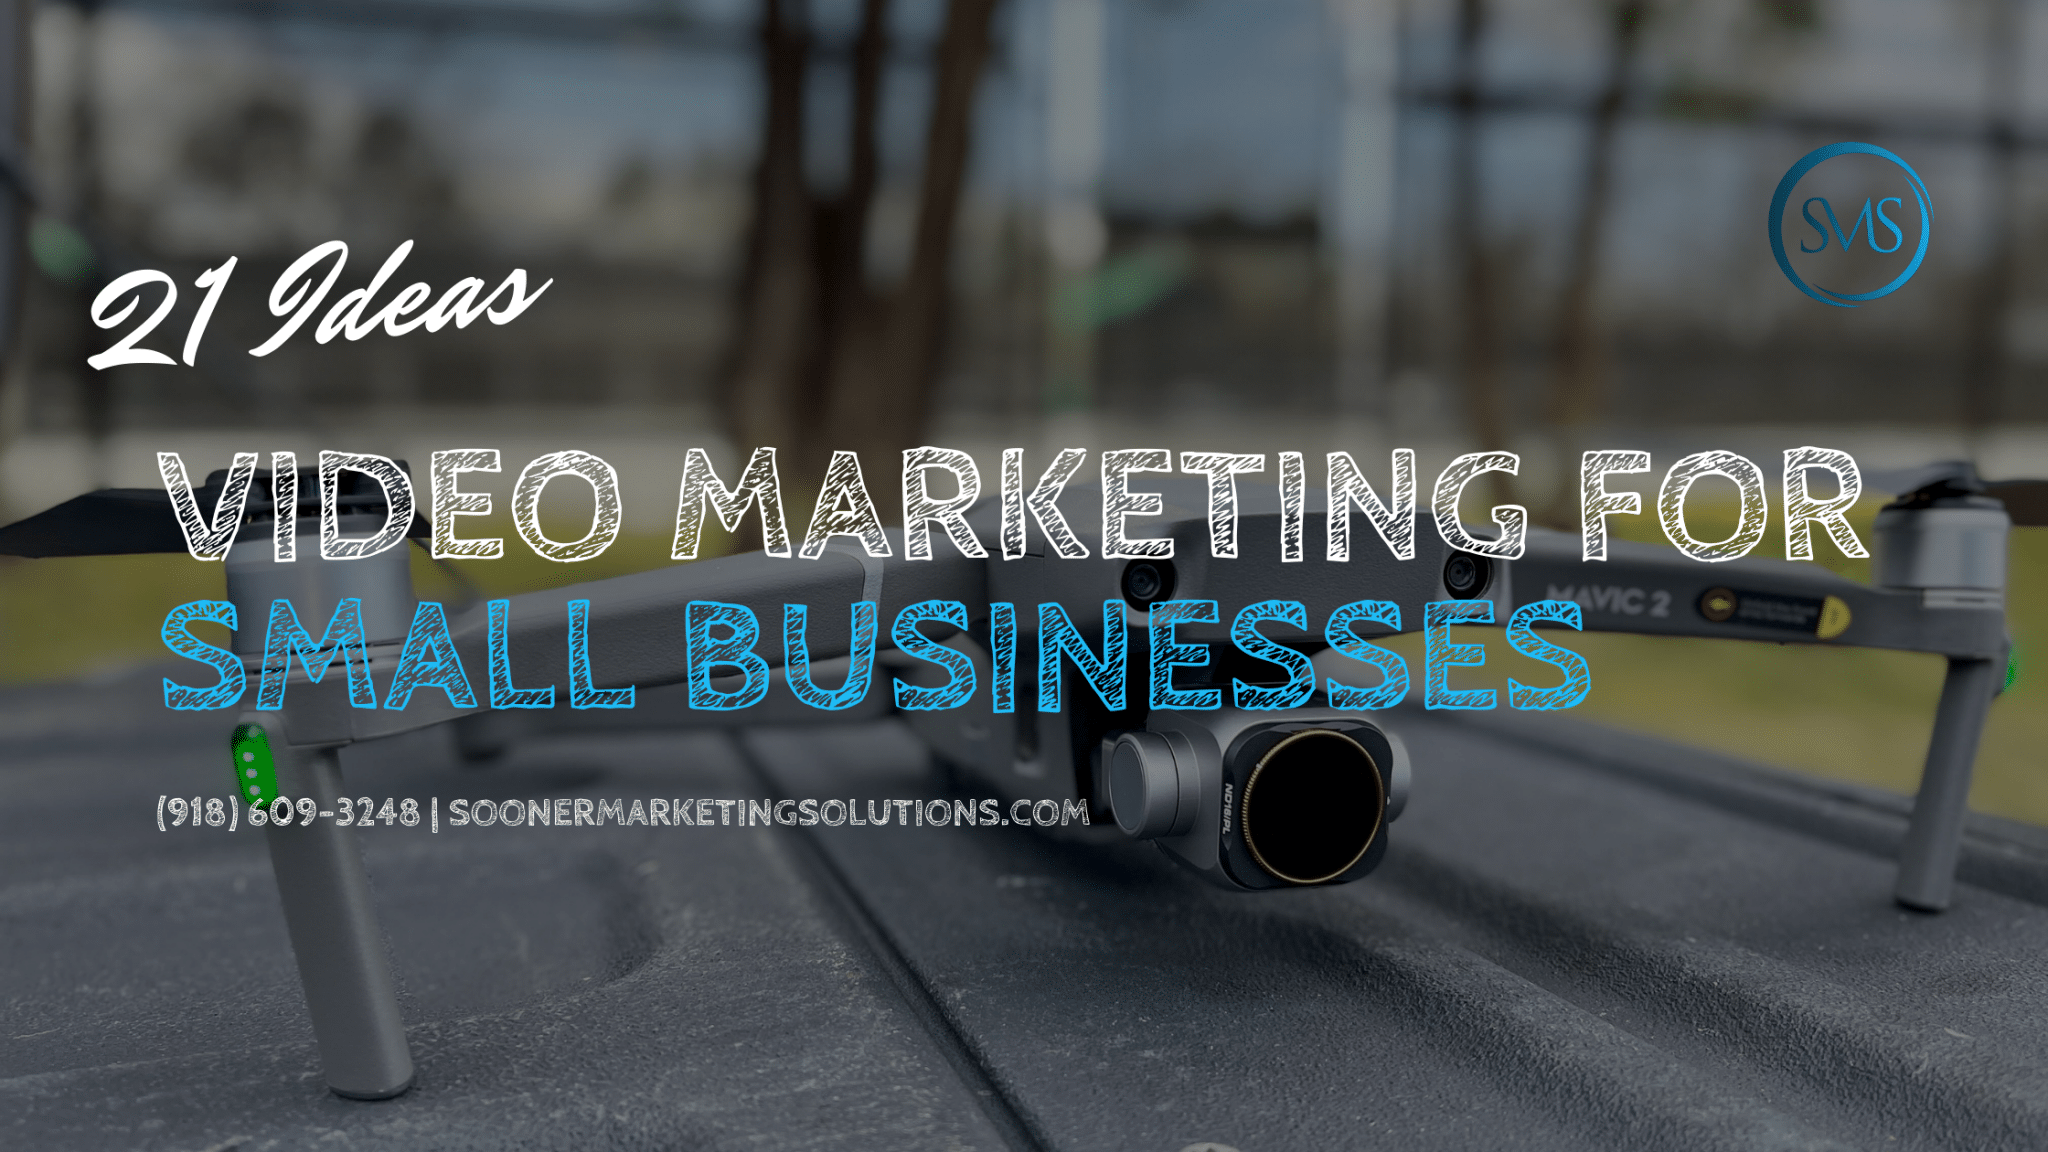 21 Video Marketing Ideas for Small Business Budgets